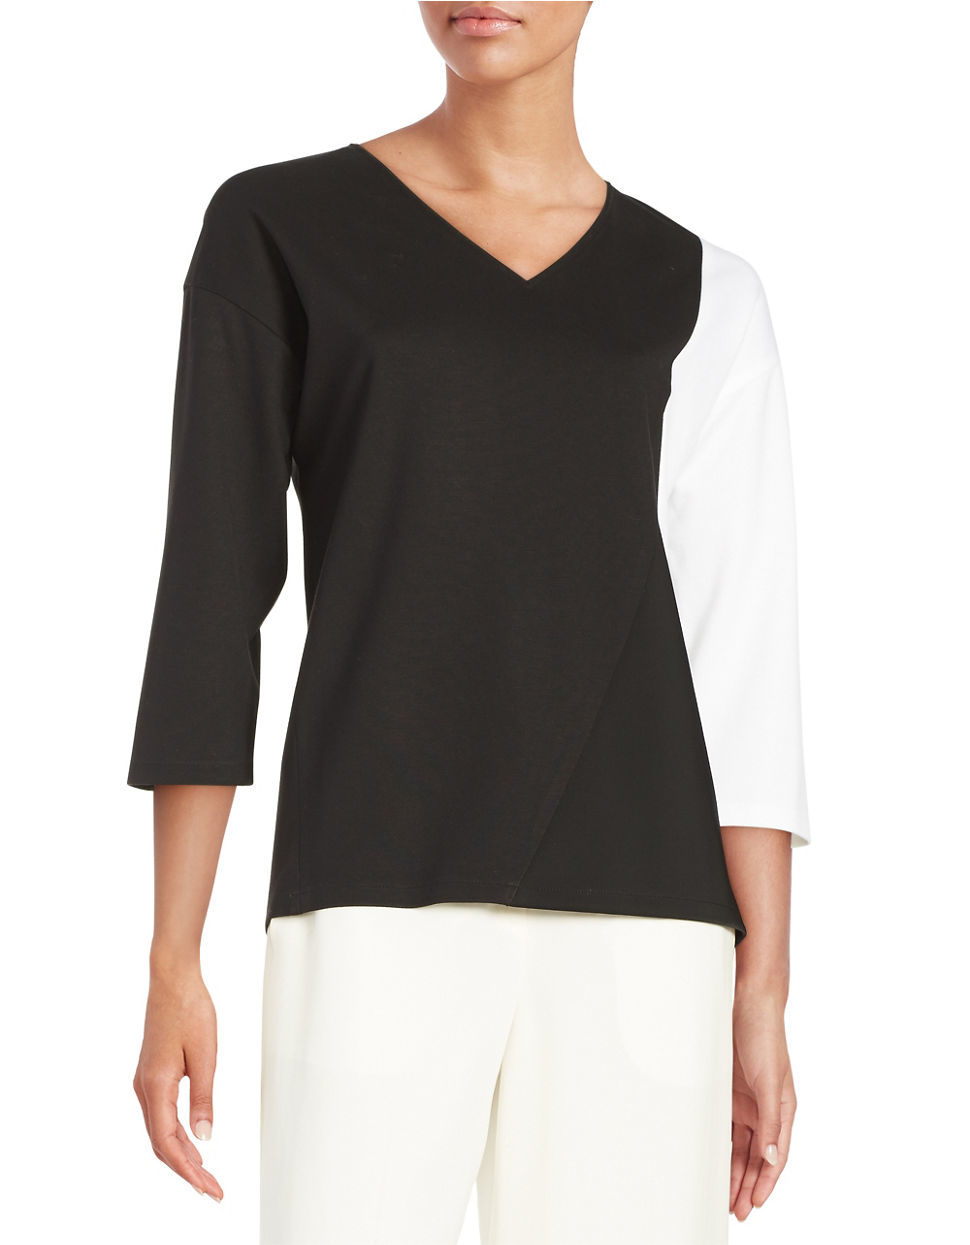 148 Best Images About Craft Ideas For Girls On Pinterest: Lafayette 148 New York Lightweight Monochrome Top